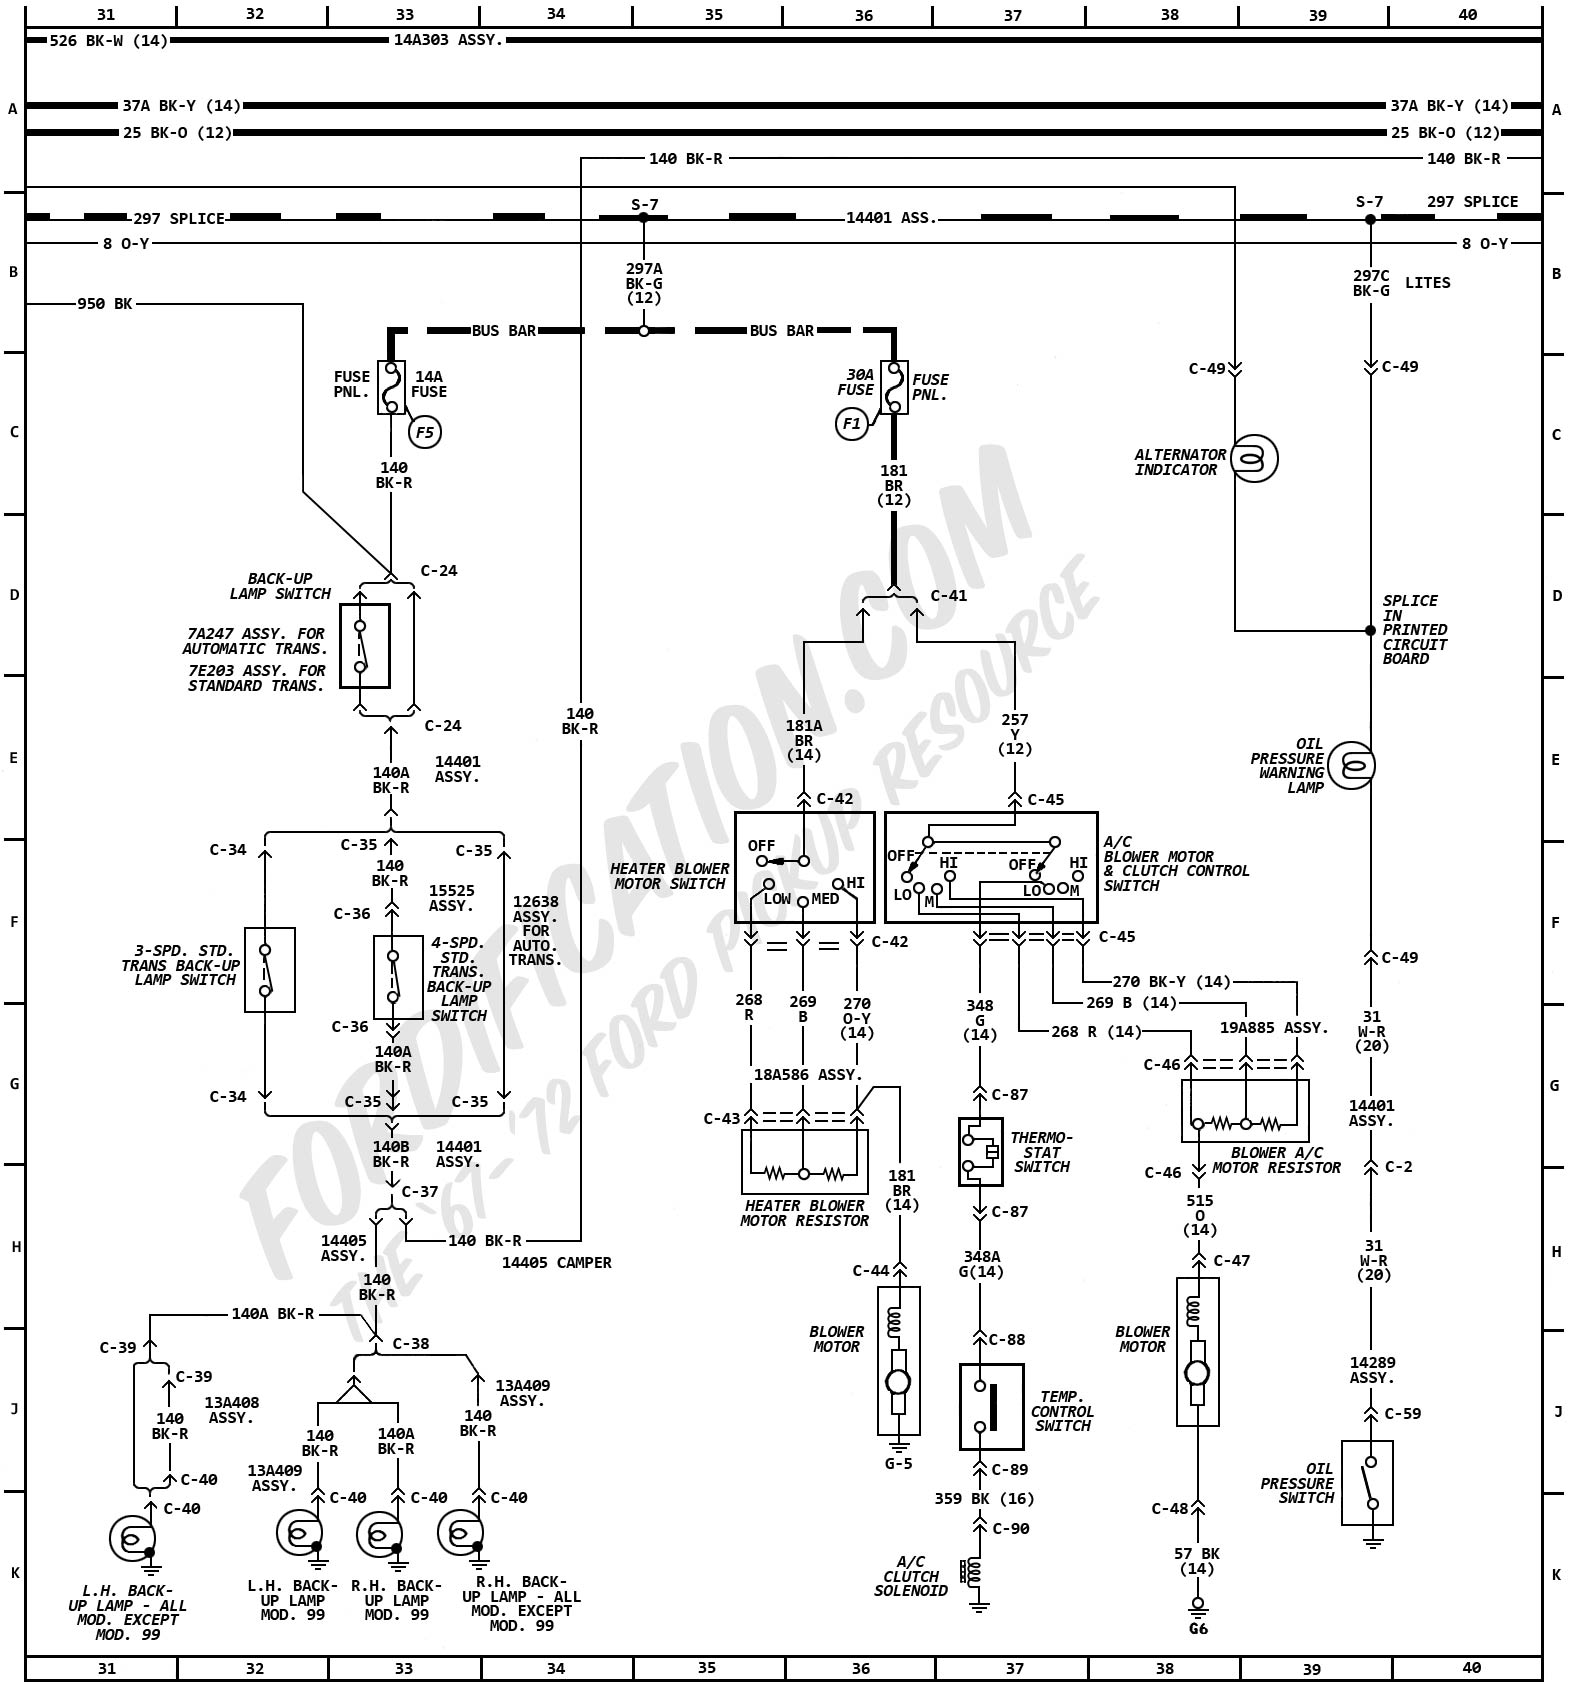 2001 F150 Blower Motor Wiring Diagram Free For You 2004 Dodge Pick Up Alternator Ford Data Rh 10 9 Reisen Fuer Meister De 1997